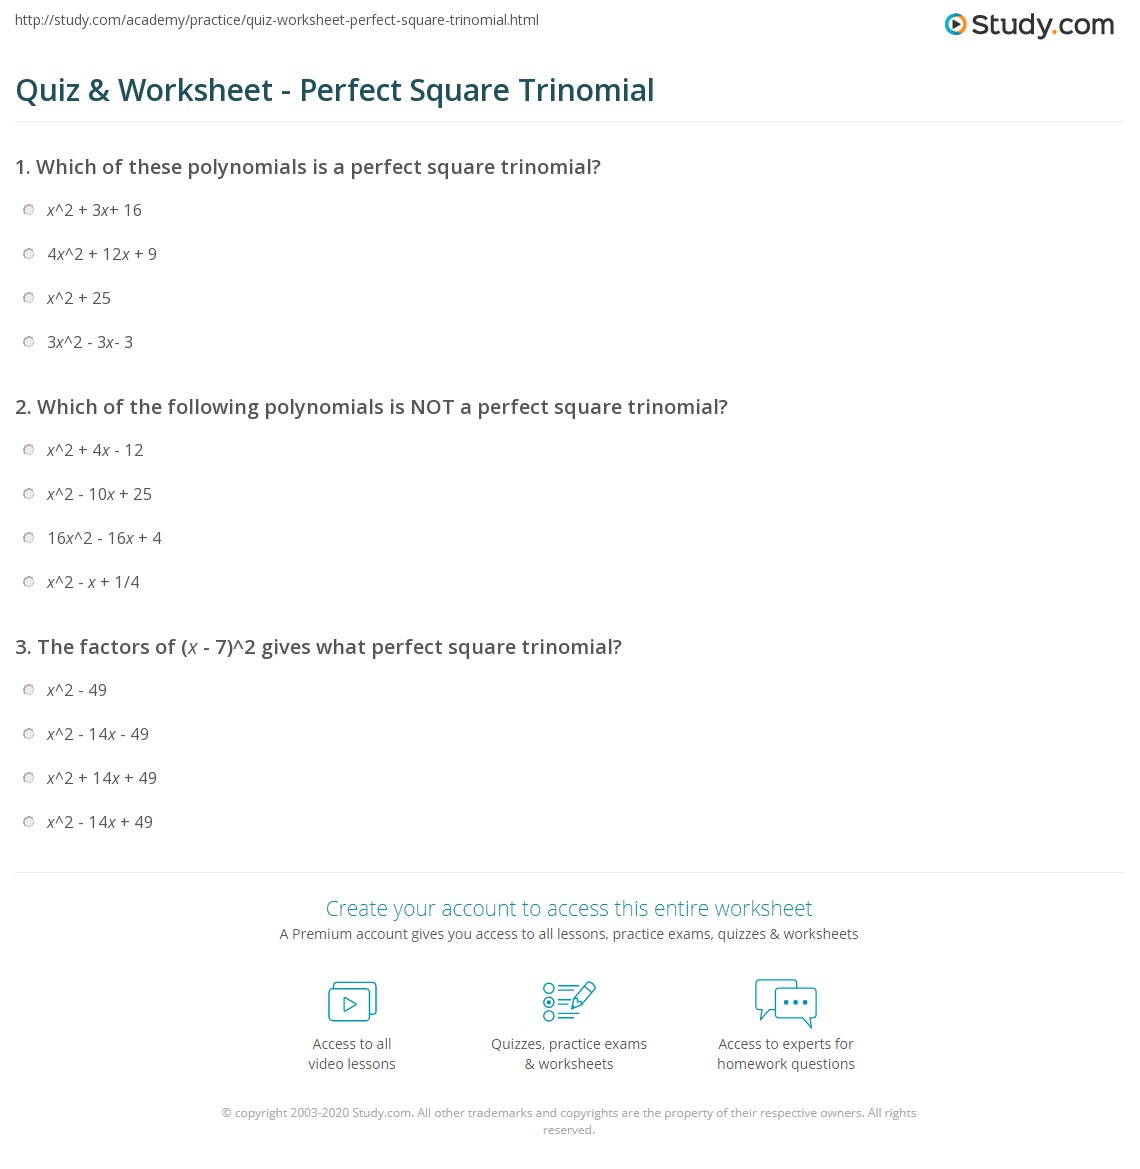 worksheet Factoring Perfect Square Trinomials Worksheet quiz worksheet perfect square trinomial study com print definition formula examples worksheet